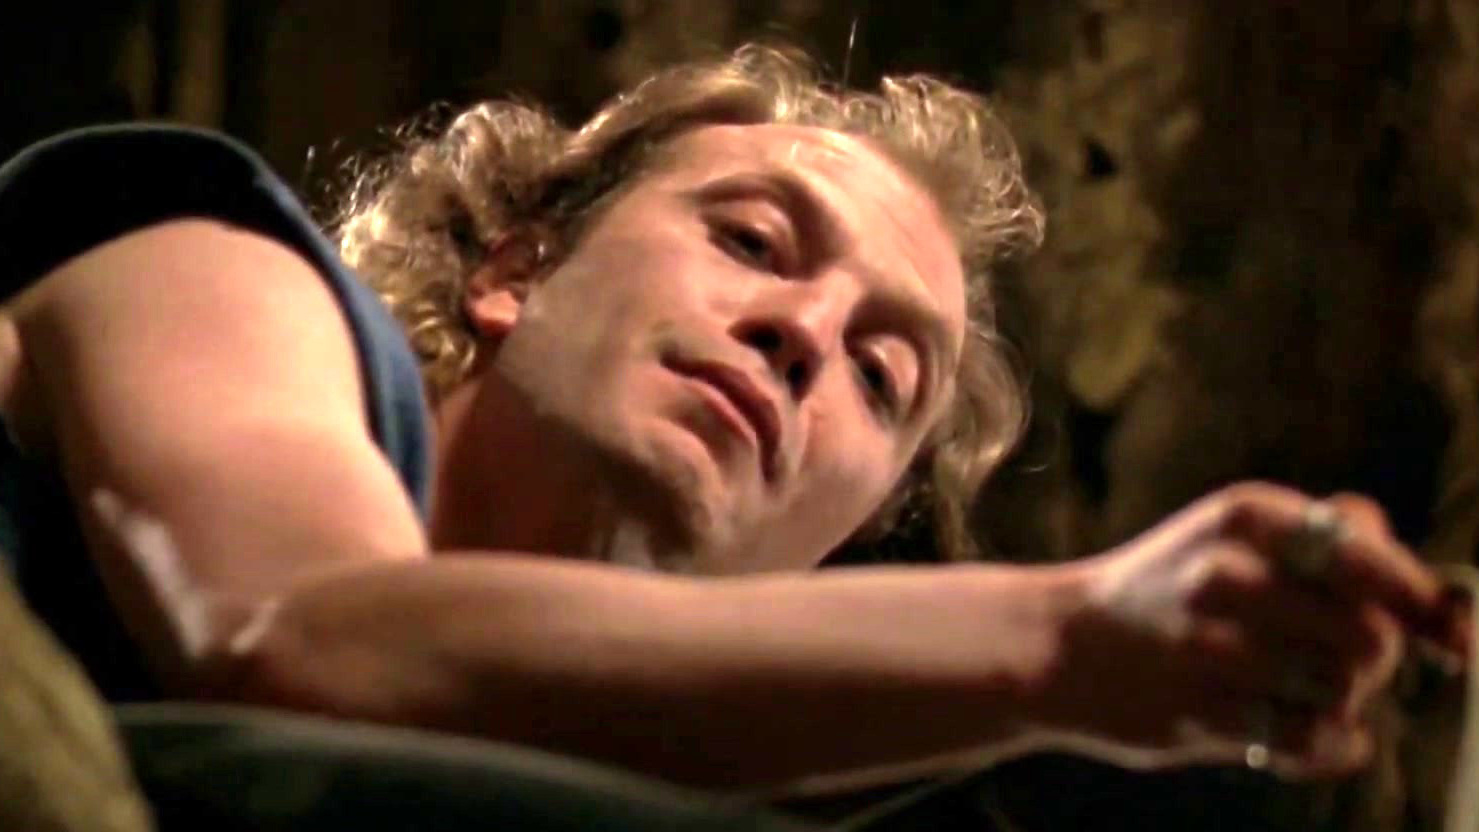 The Silence Of The Lambs: It Rubs The Lotion On Its Skin